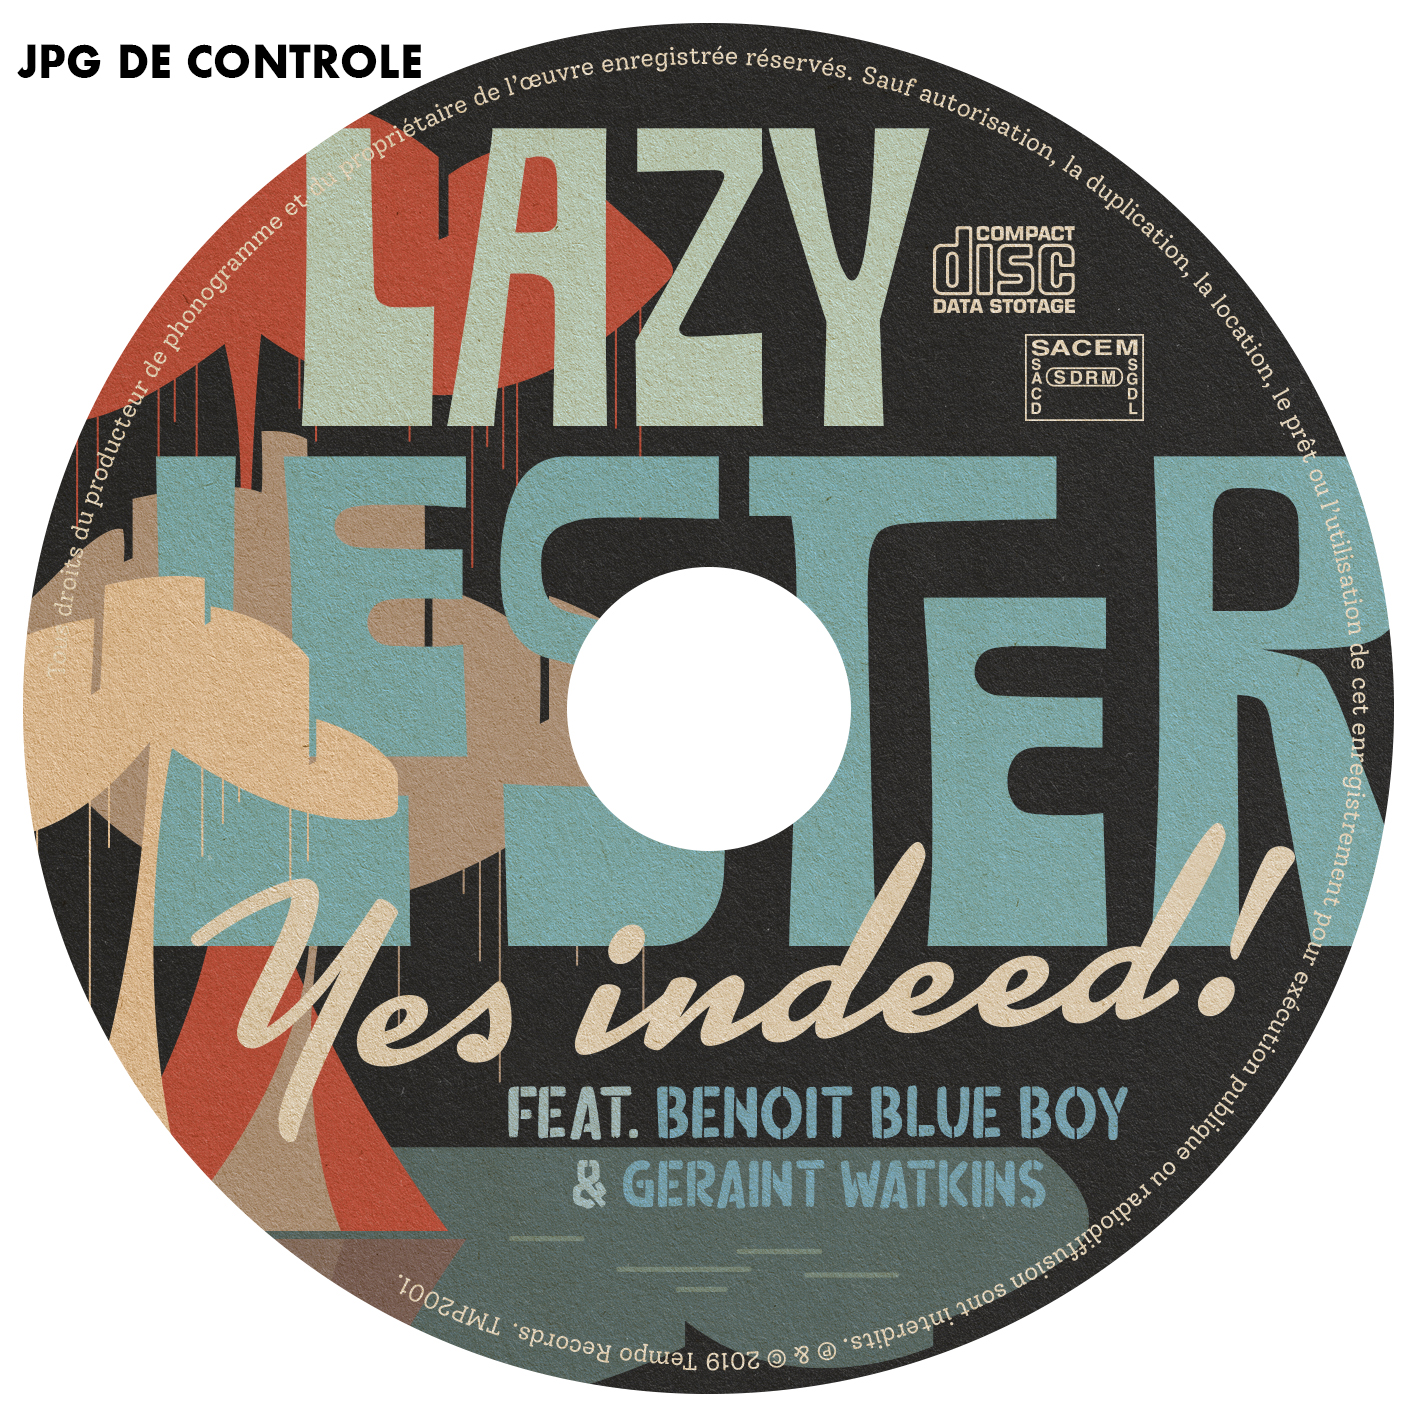 rondelle Lazy Lester yes indeed JPG de controle